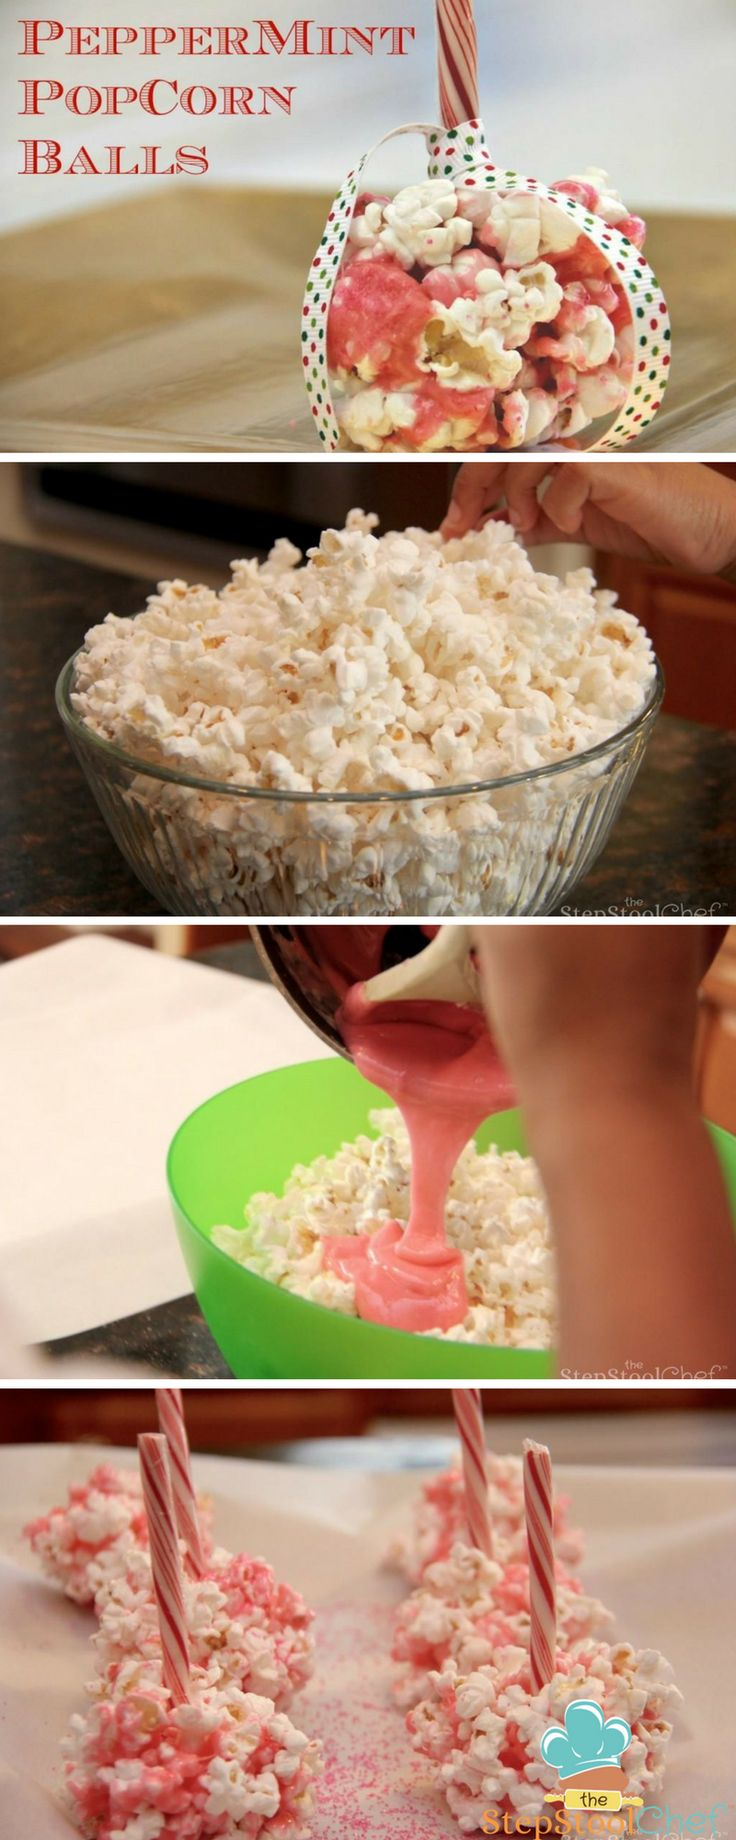 Peppermint Popcorn Balls | The Step Stool Chef